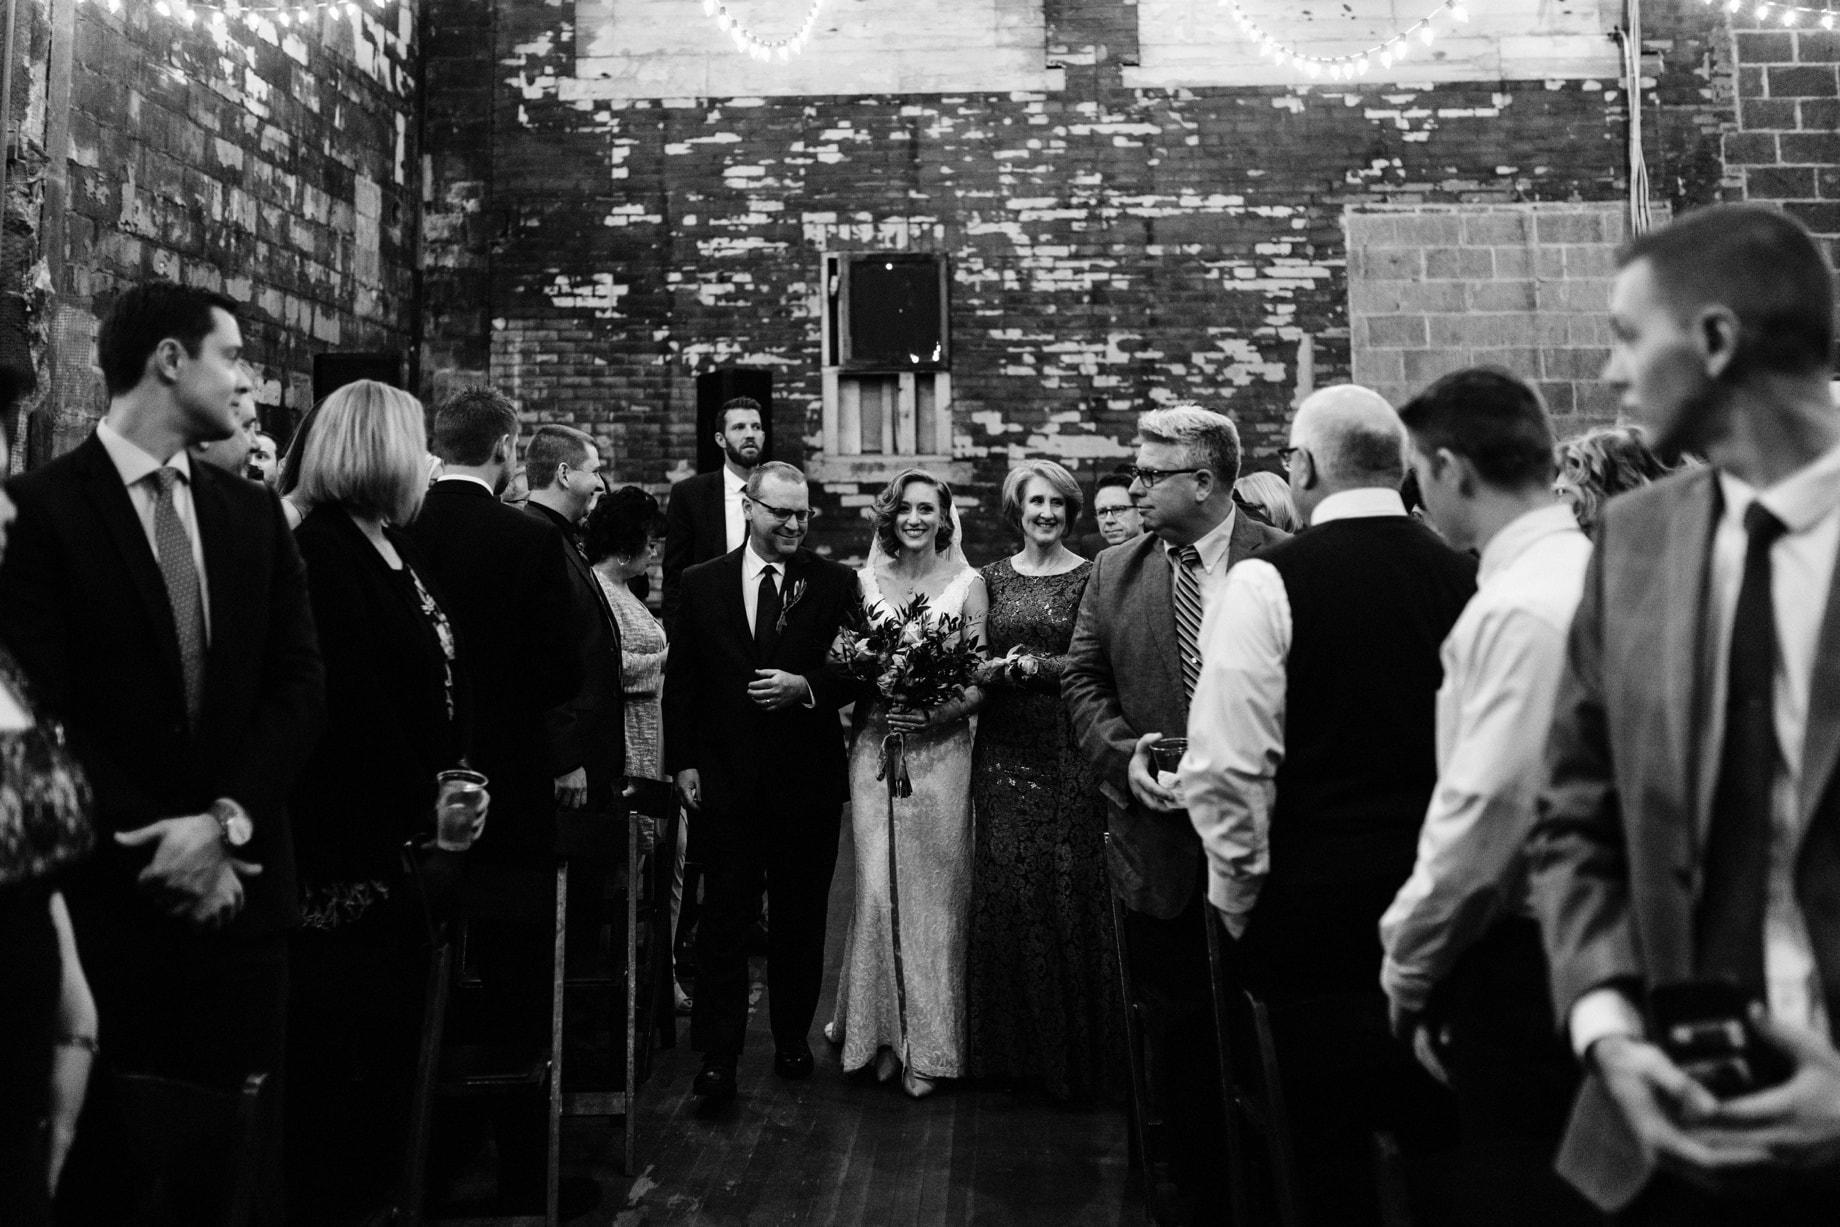 winter wedding ceremony at the Jam Handy